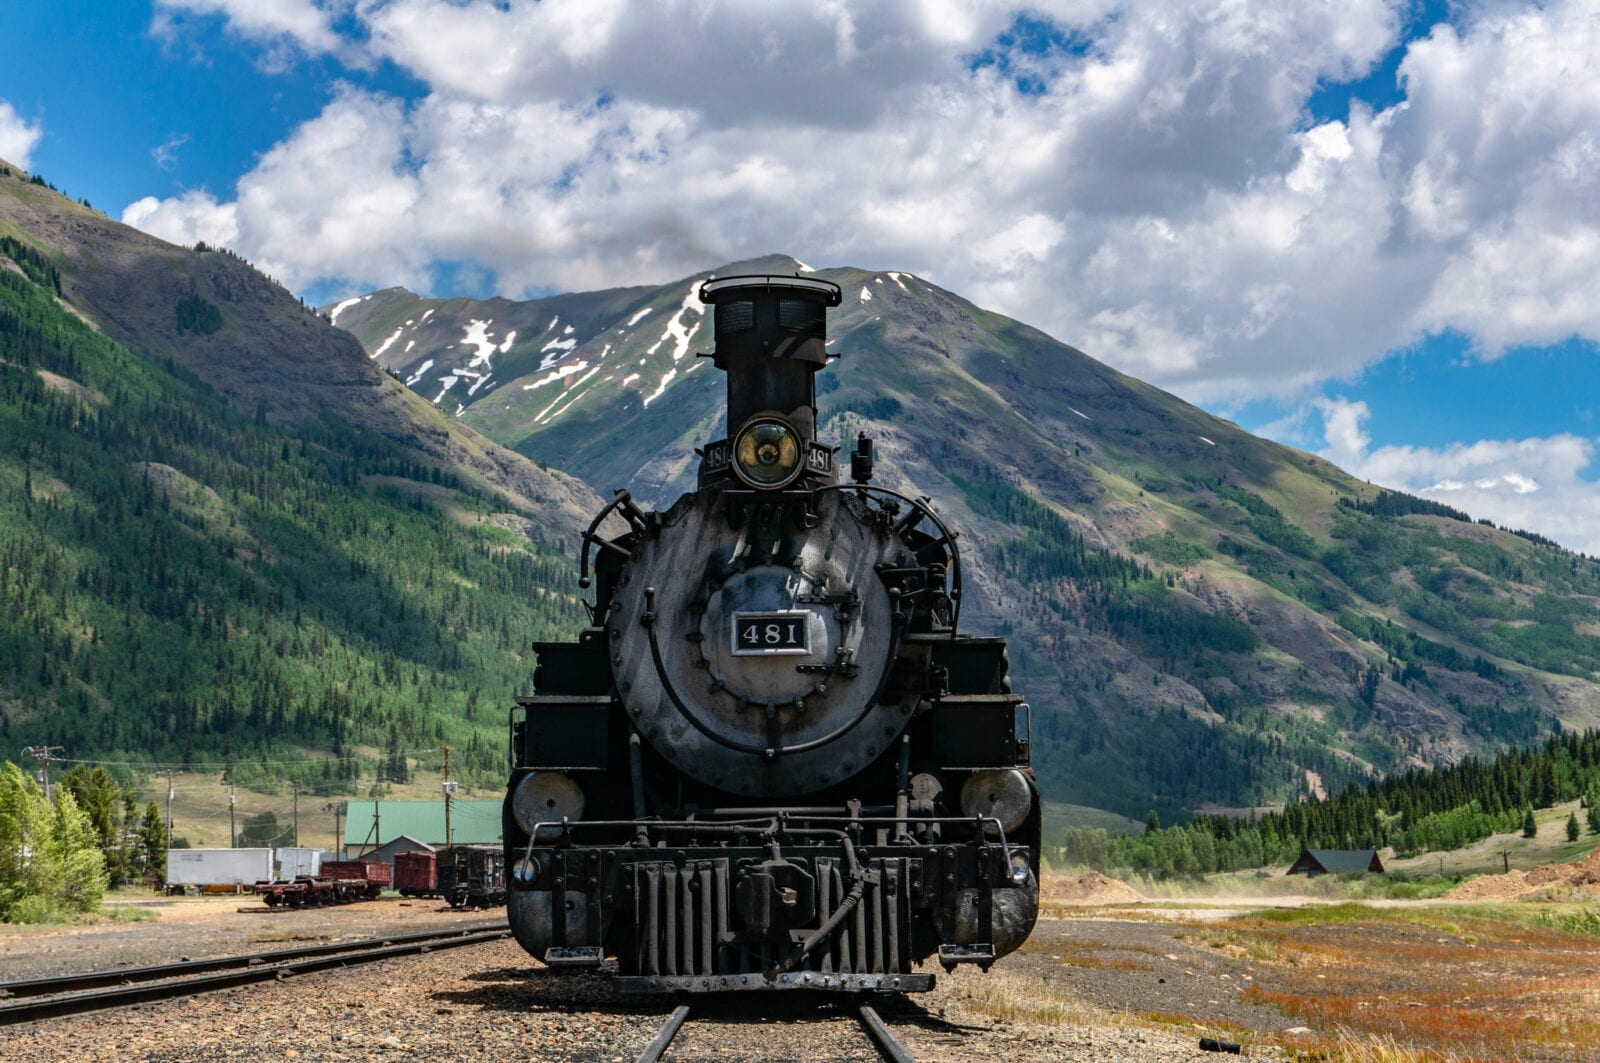 image of the Durango and Silverton train